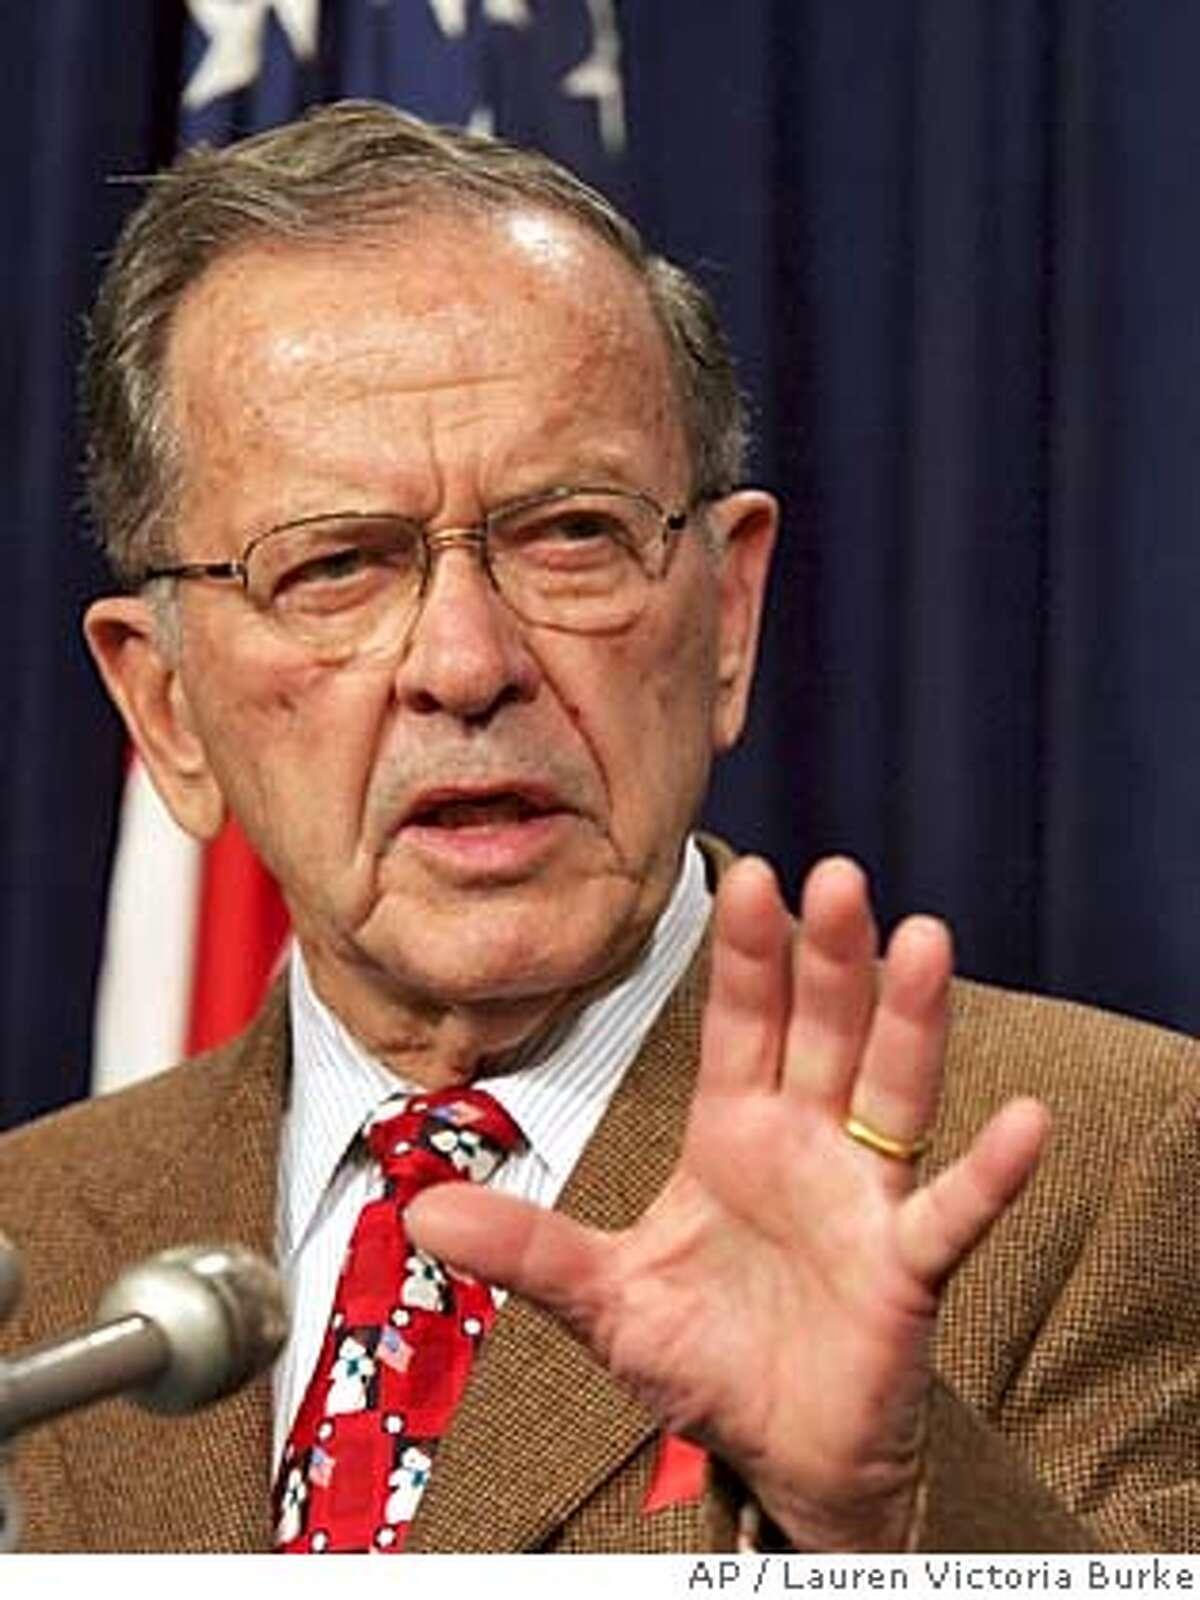 Sen. Ted Stevens, R-Alaska, speaks during a news conference in Washington, D.C. Monday, Dec. 19, 2005. After the House gave a go-ahead to drilling for oil in Alaska's Arctic National Wildlife Refuge as part of a defense spending bill, Democrats and moderate Republicans scrambled Monday in the Senate to try to block the measure crafted by Stevens, an ardent supporter of developing the refuge's oil. A Senate vote on the matter was likely by Wednesday. (AP Photo/Lauren Victoria Burke)